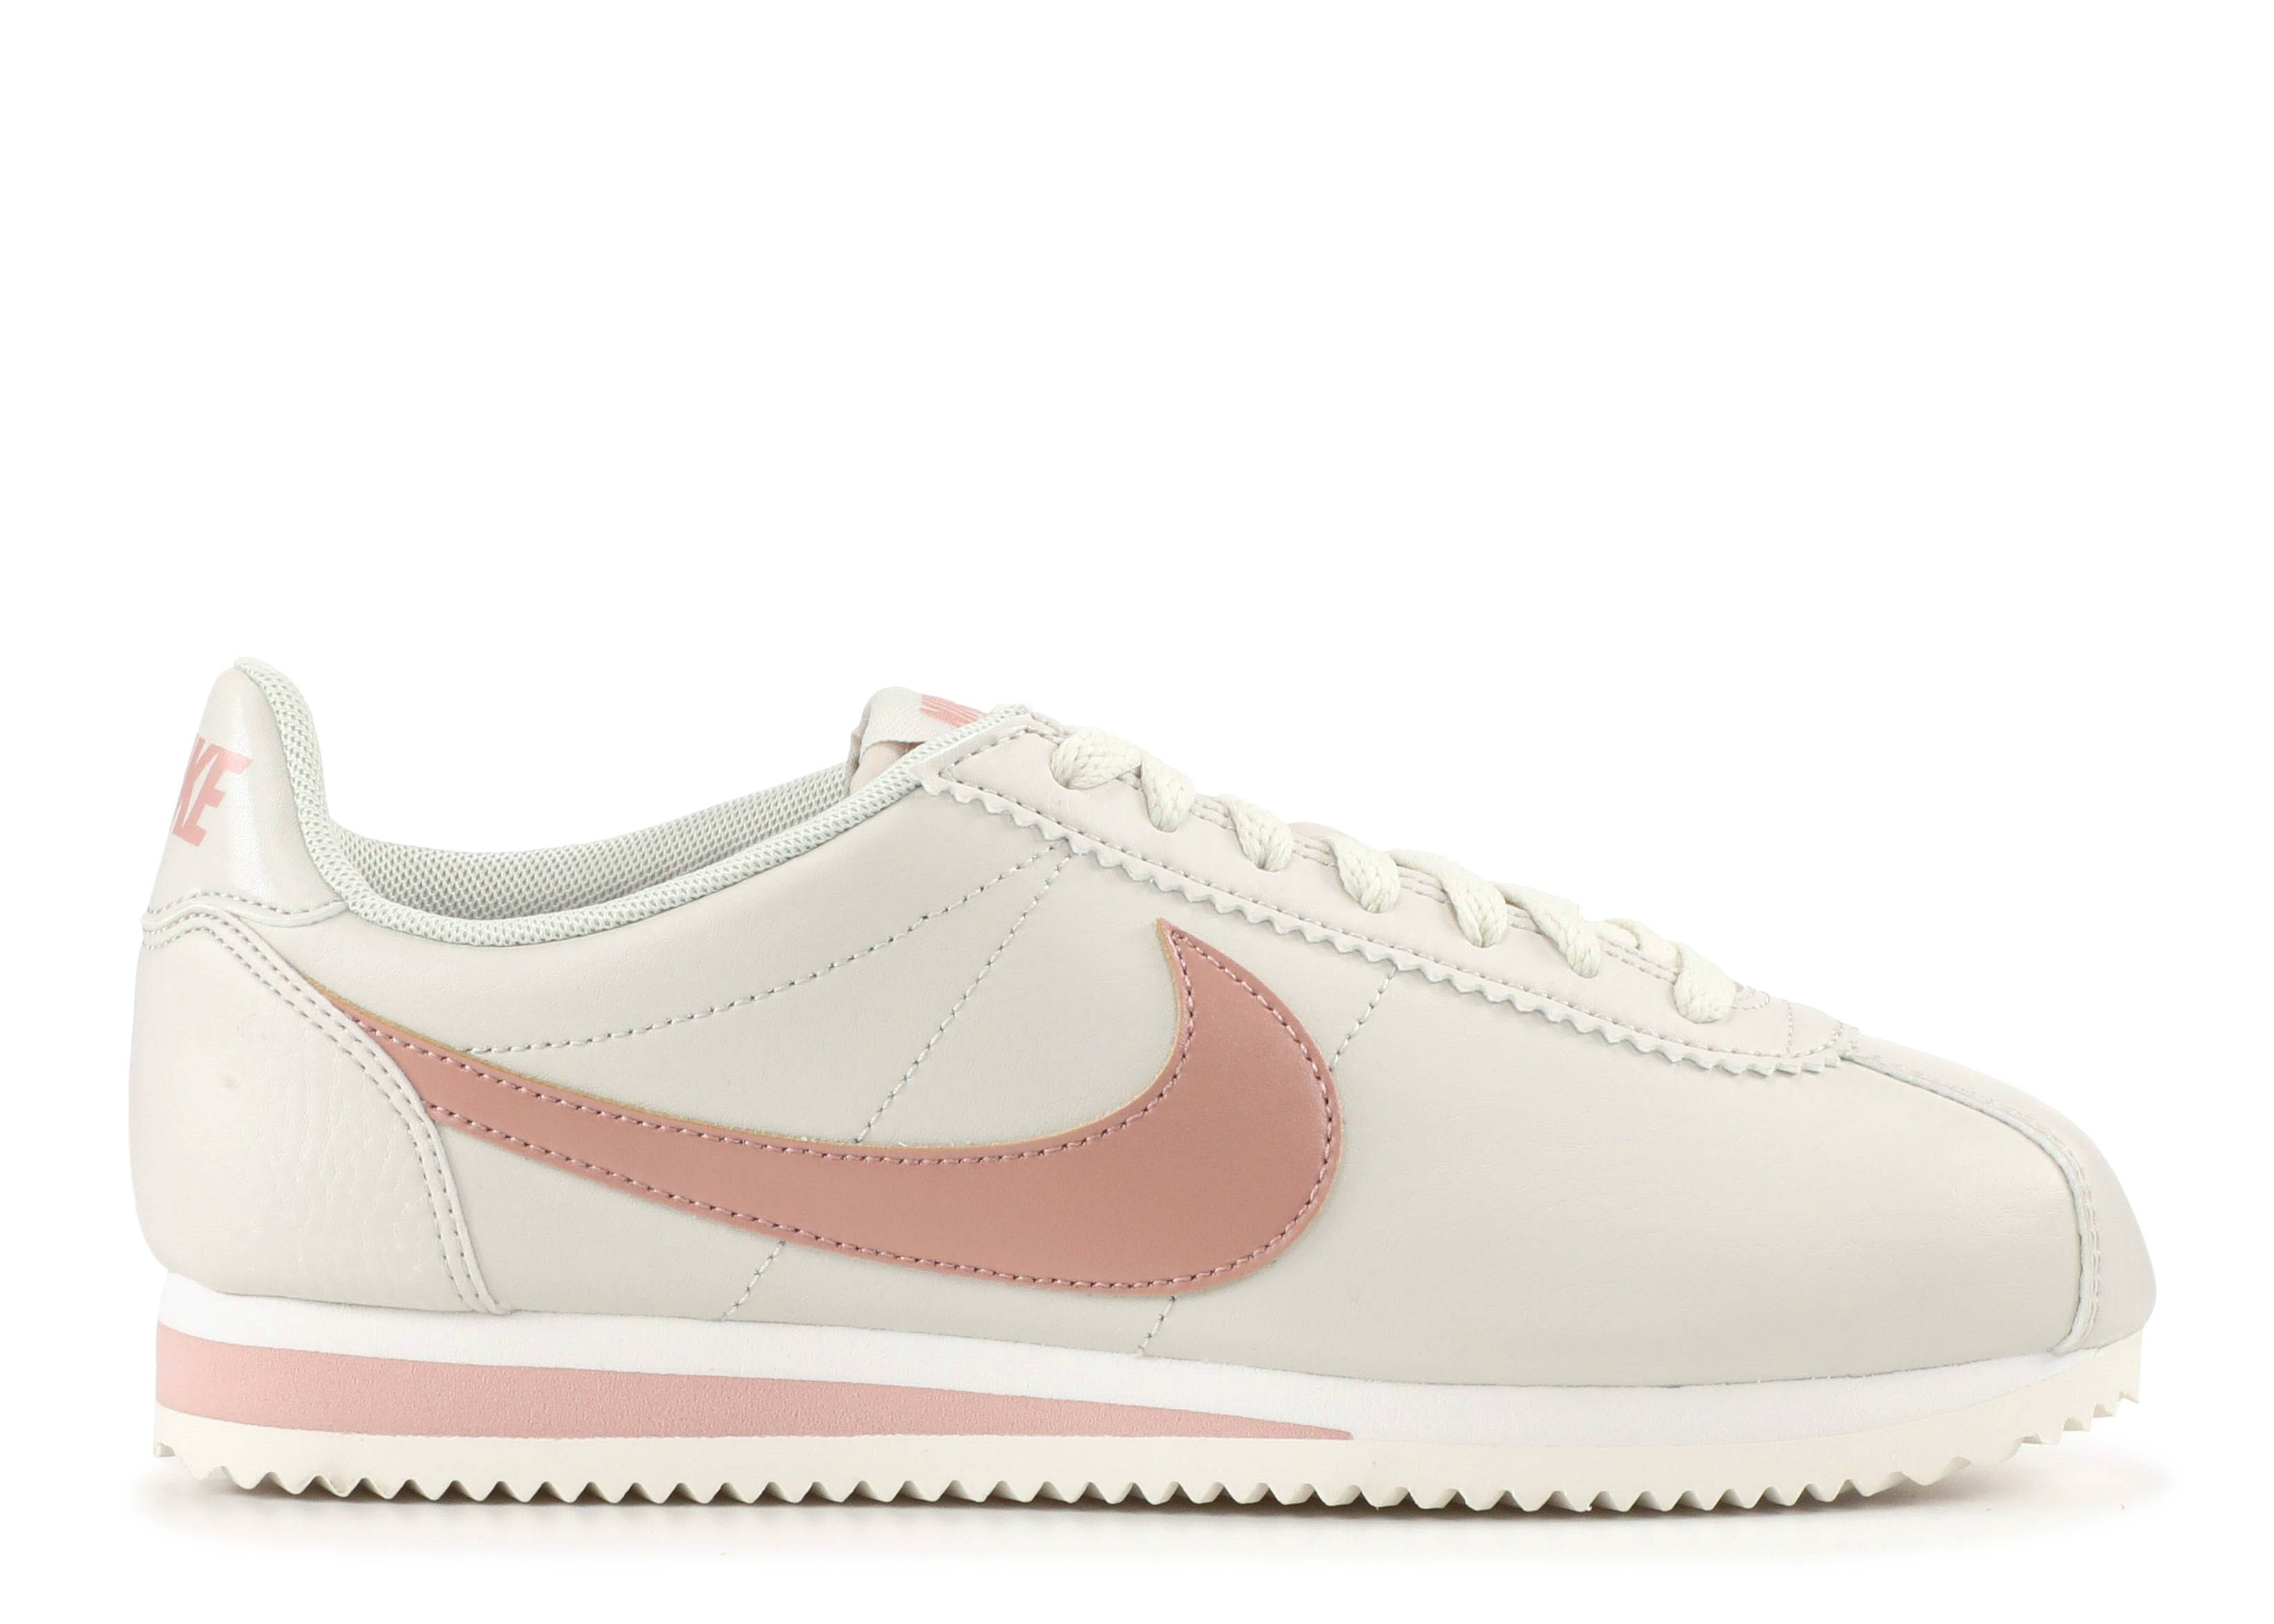 f05a37ae2 Wmns Classic Cortez Leather - Nike - 807471 013 - light bone particle pink